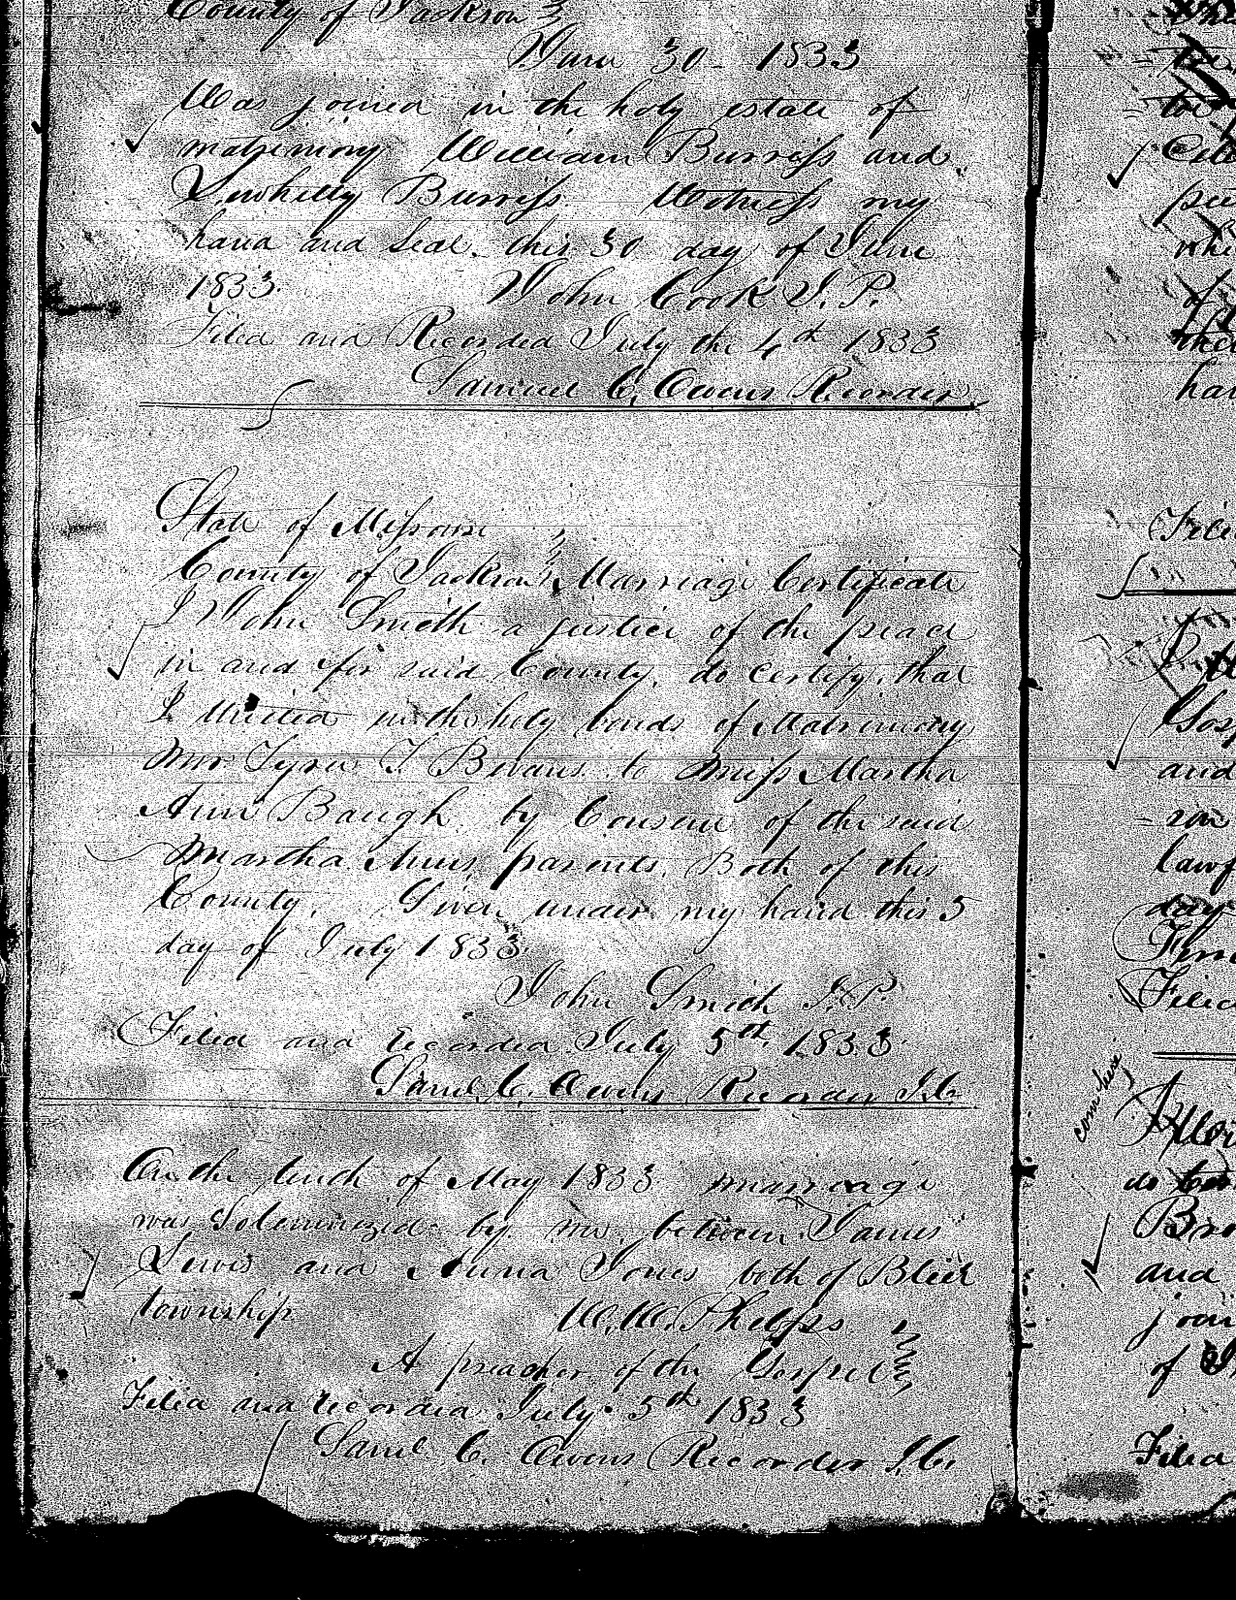 Marriage of James Lewis and Anna Jones